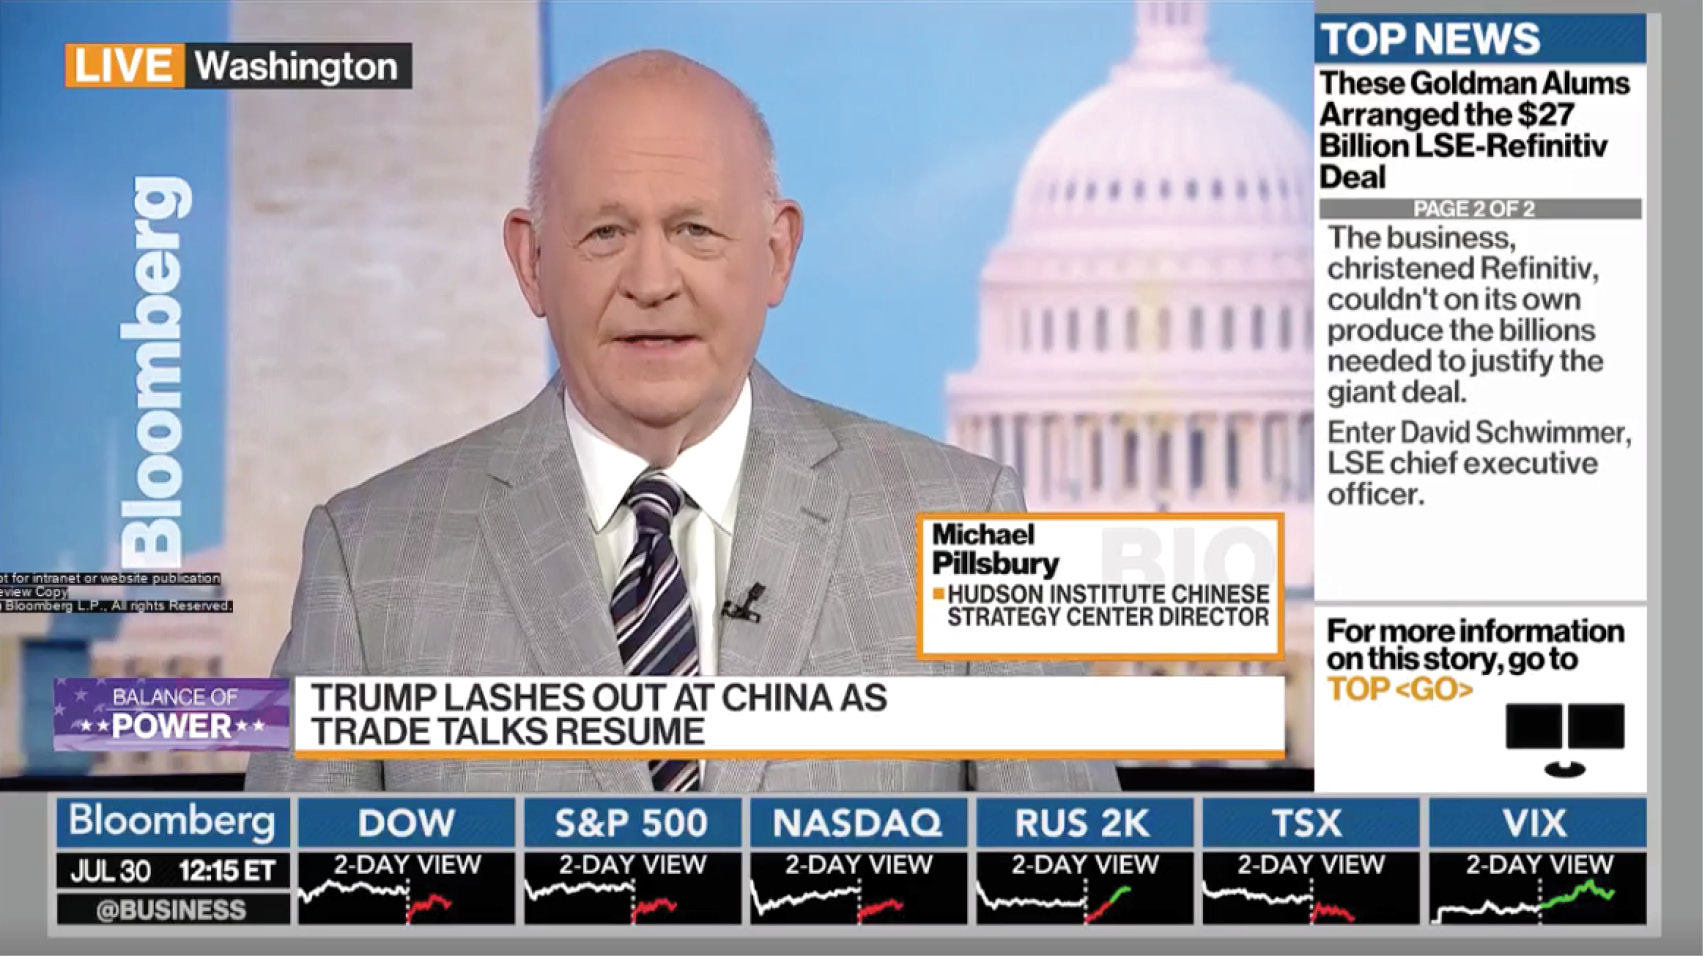 Michael Pillsbury discusses the current round of trade U.S.-China trade talks.